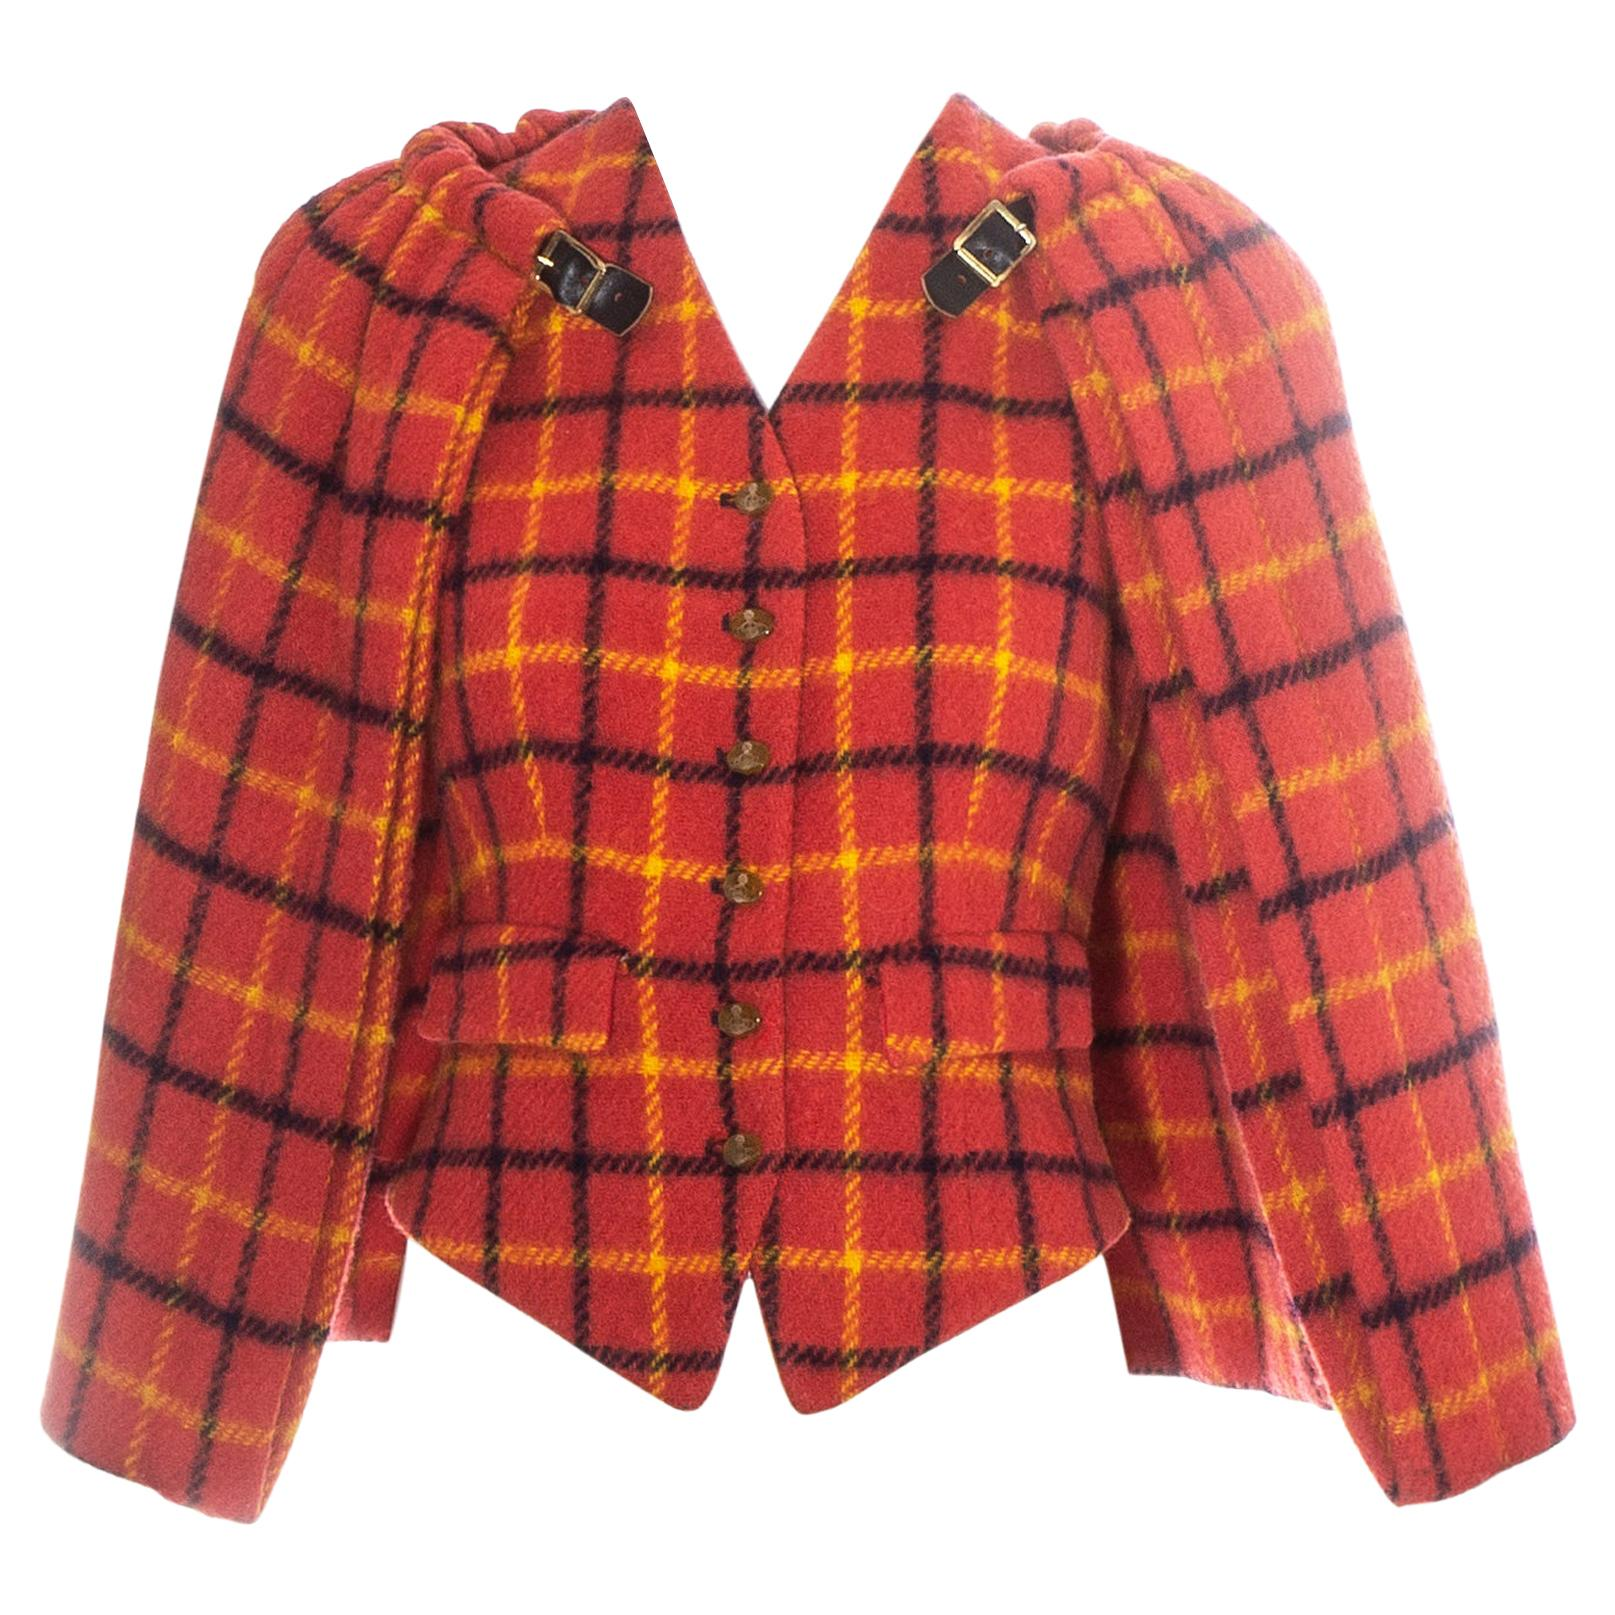 Vivienne Westwood red checked wool waistcoat with caplet, fw 1988